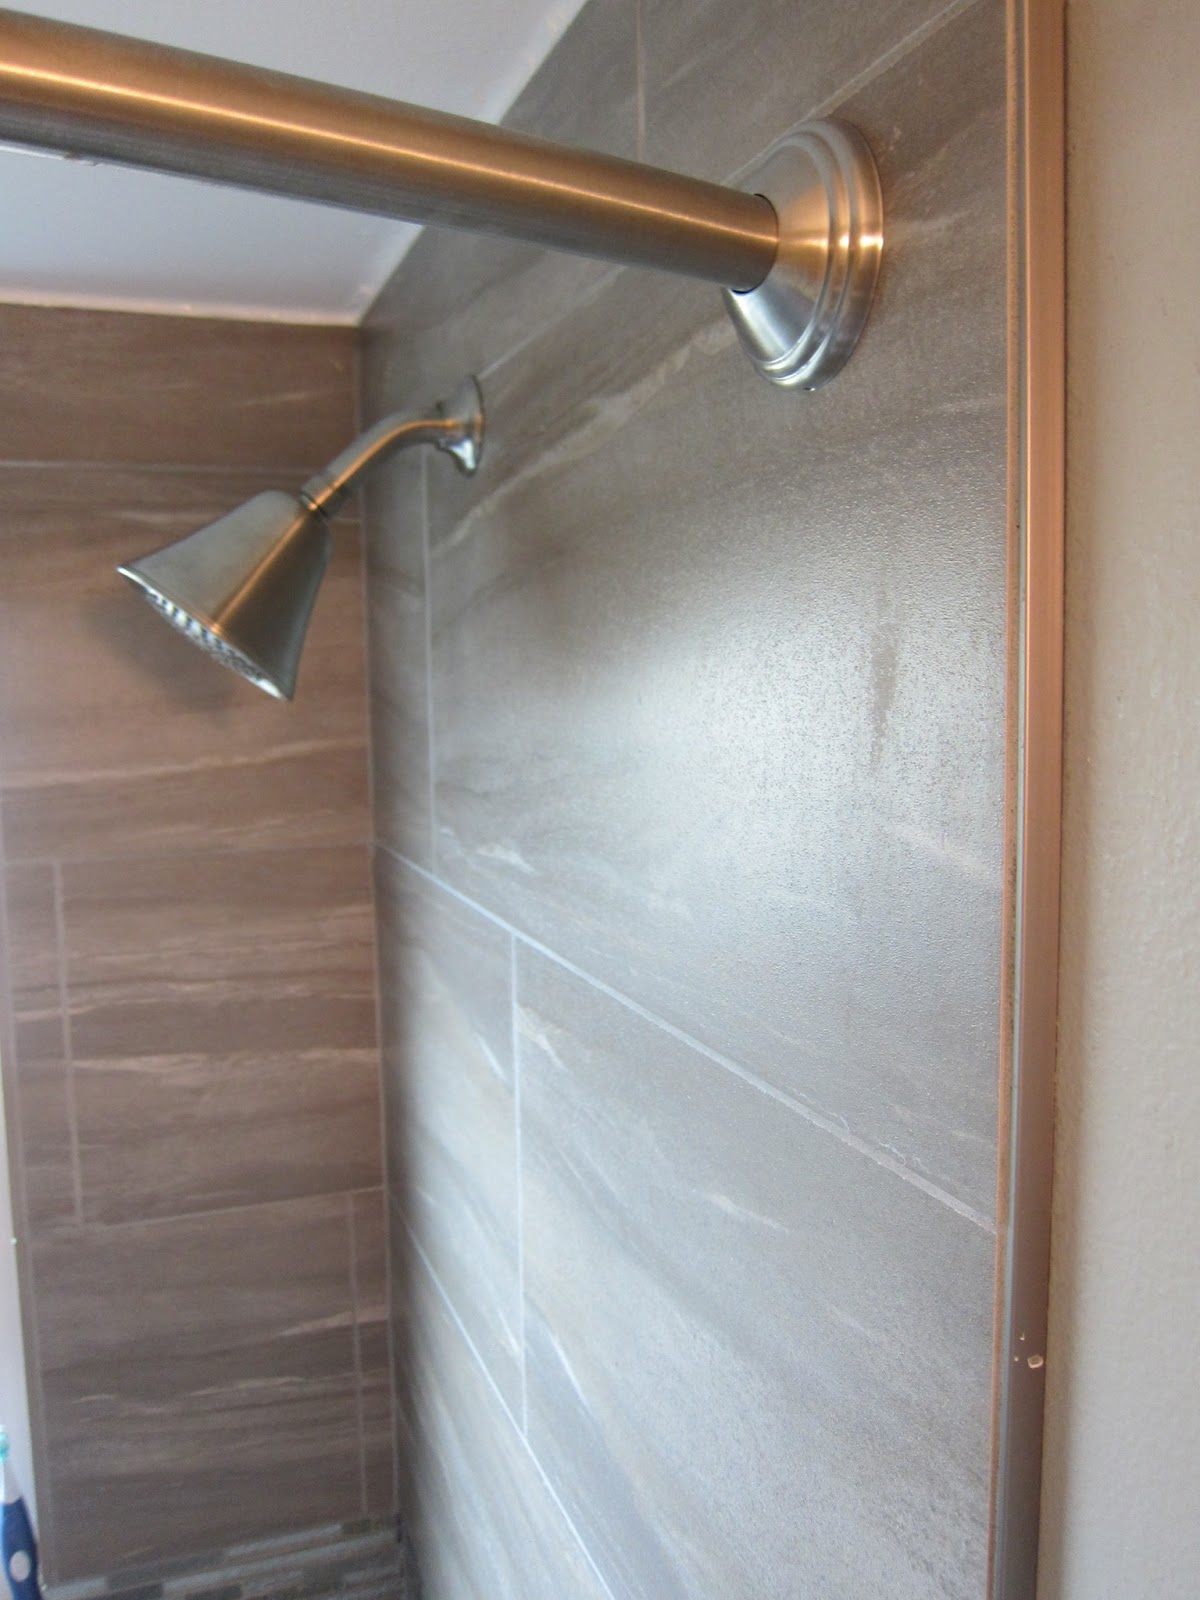 Tiling the shower - to bullnose or not to bullnose? | Late Day Sun